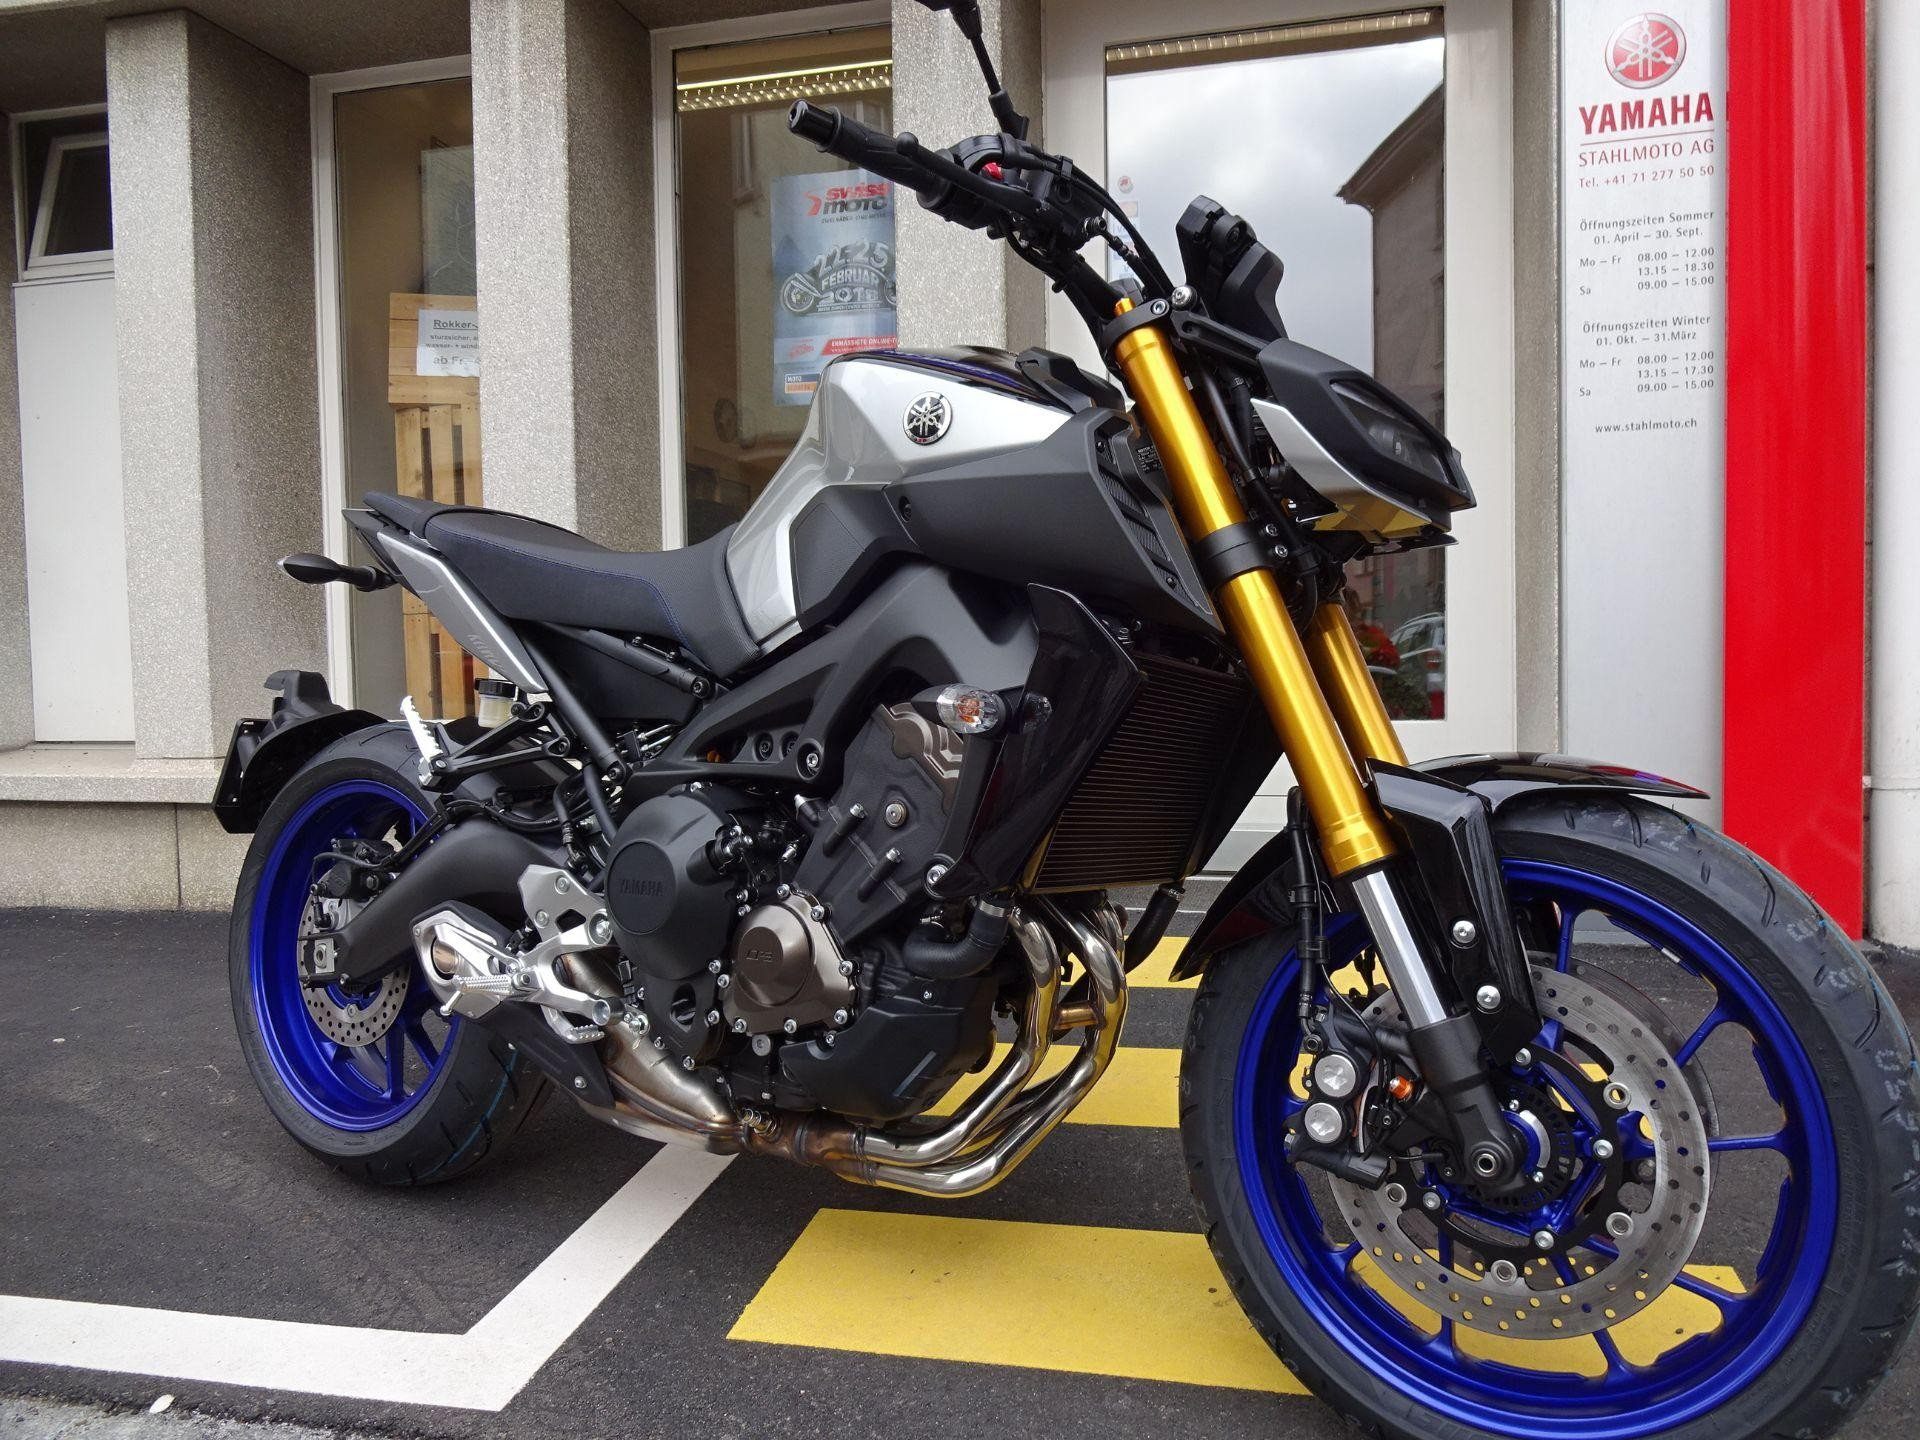 moto d monstration acheter yamaha mt 09 sp stahlmoto ag st gallen. Black Bedroom Furniture Sets. Home Design Ideas